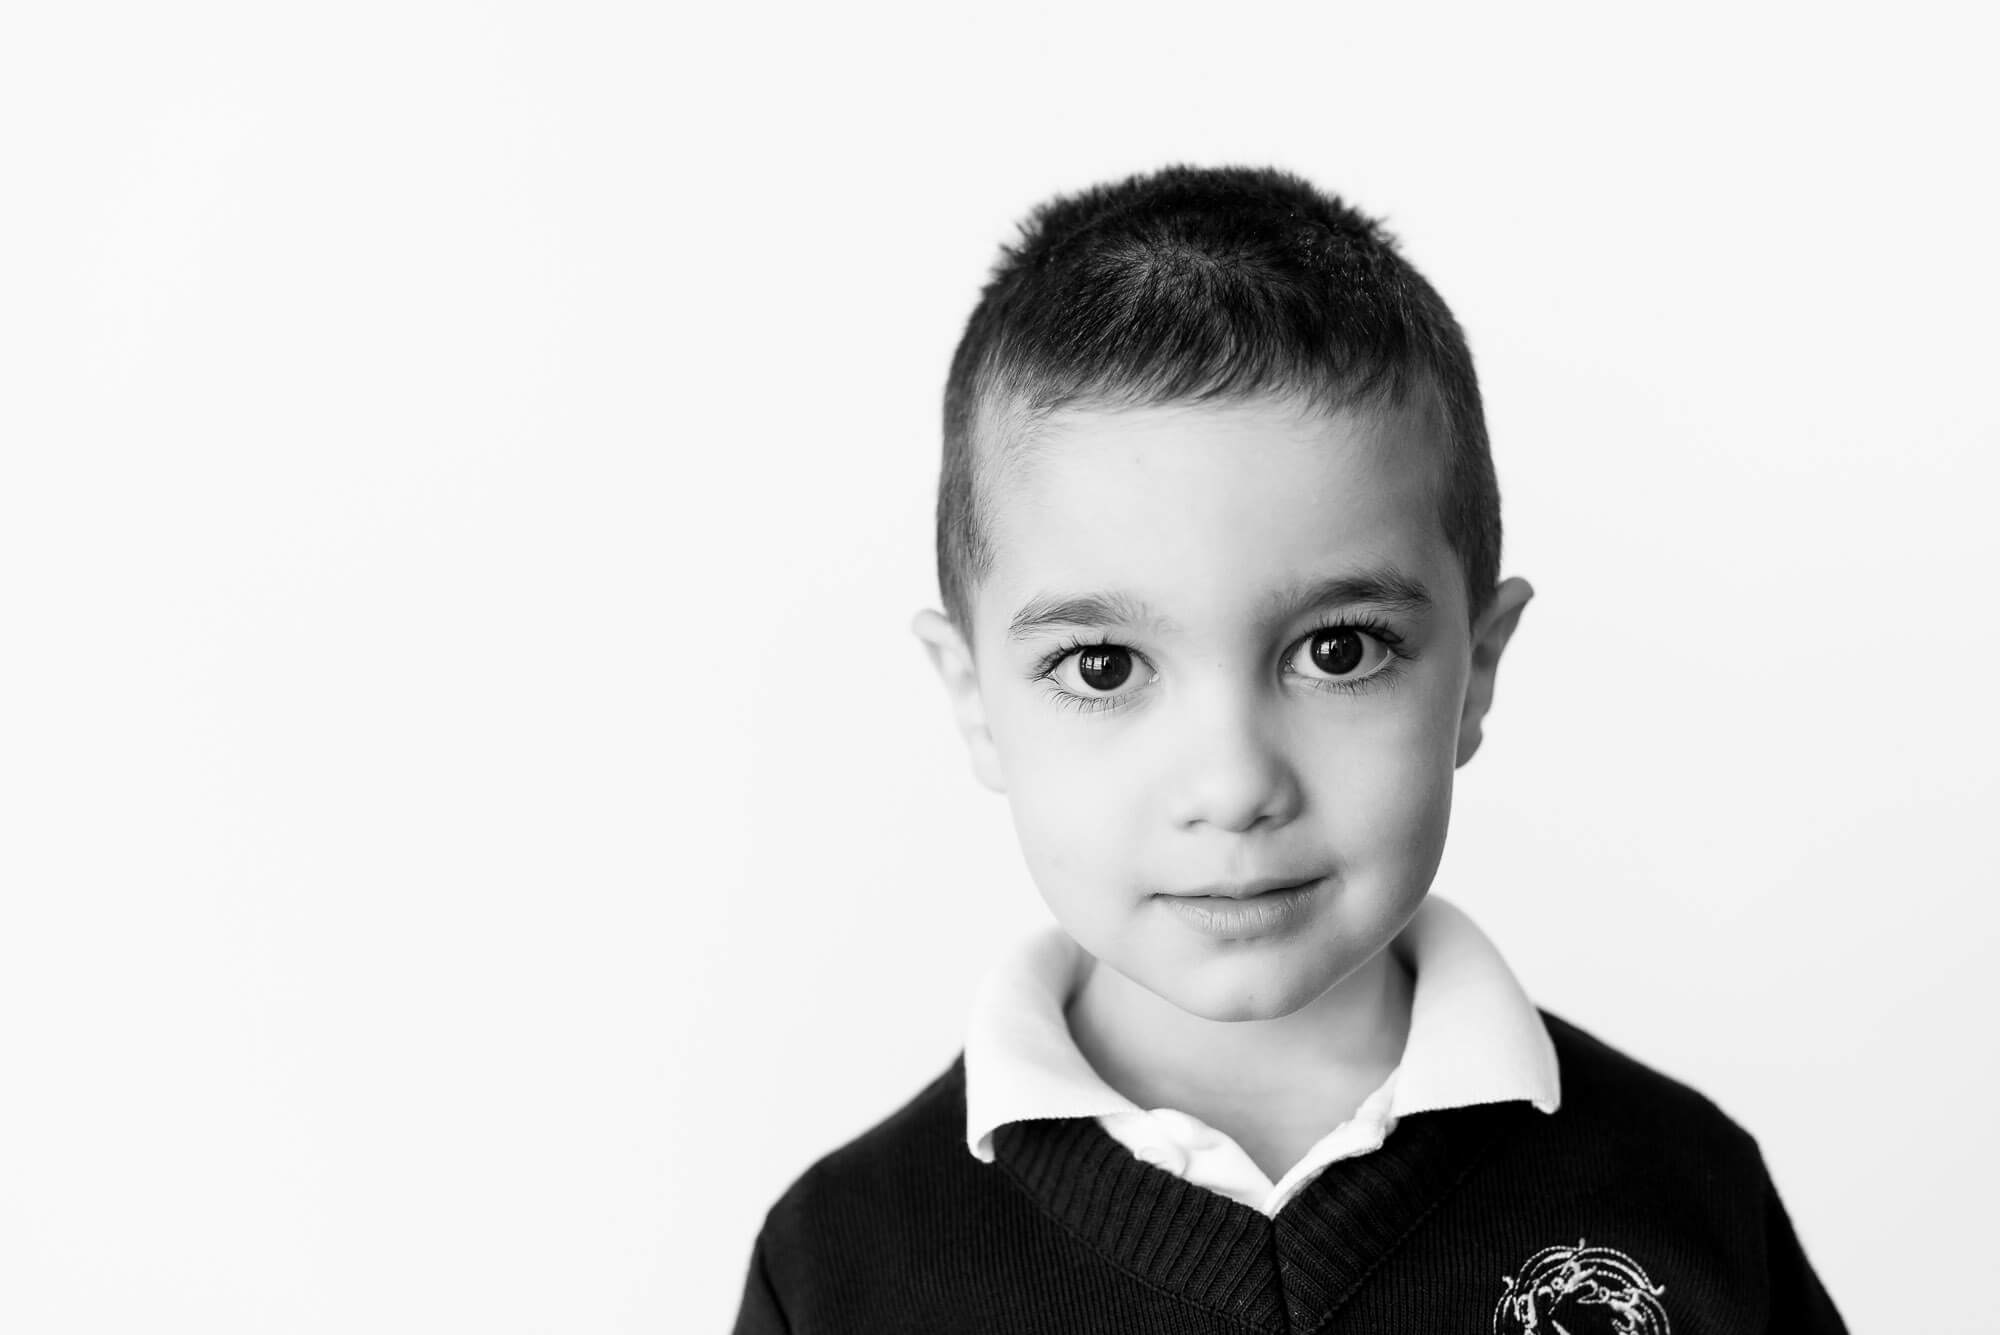 boutique school photography serious looking boy